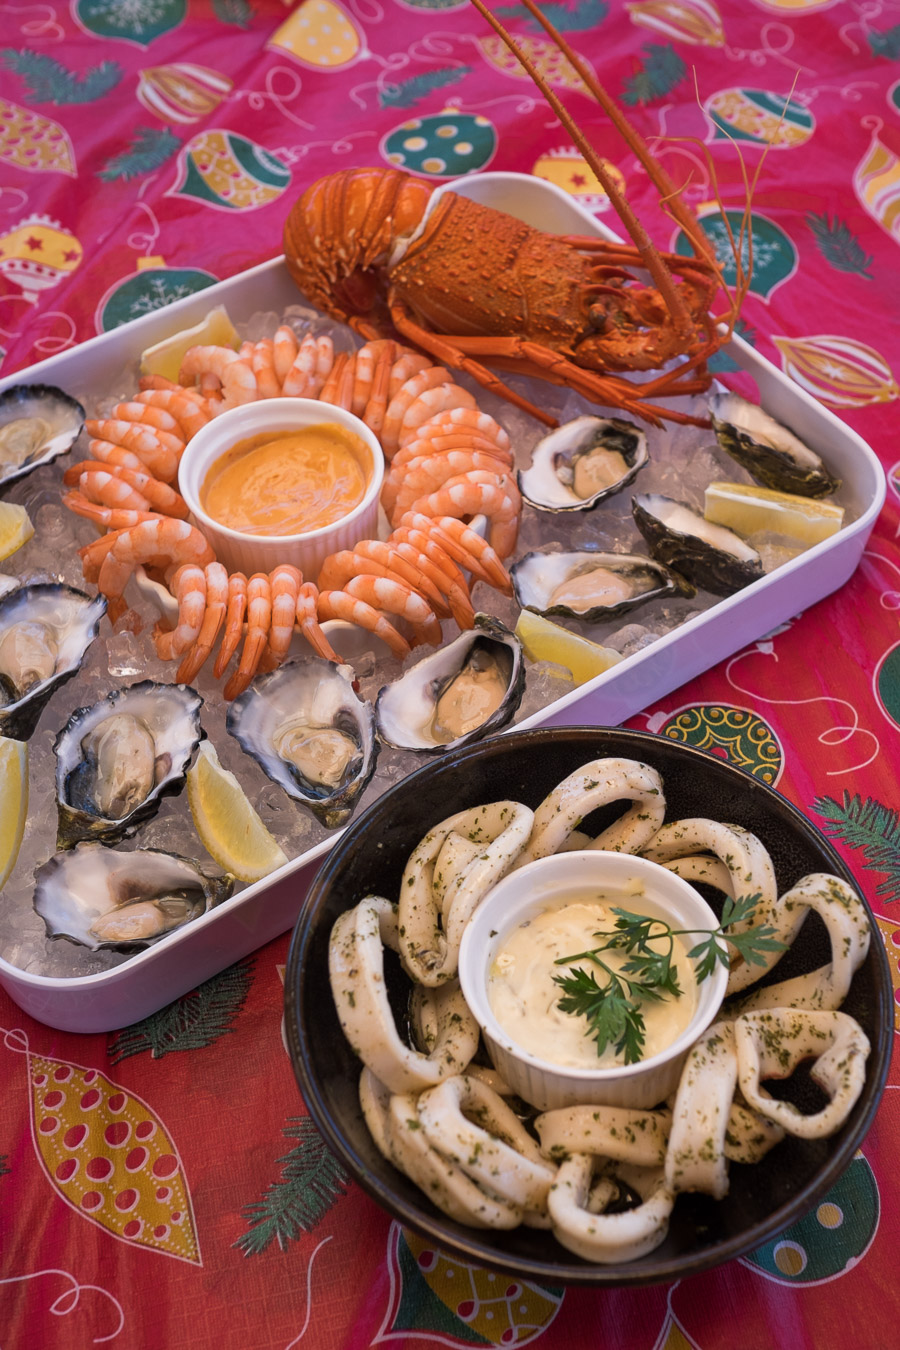 Prawns with seafood cocktail sauce, oysters natural with lemon and Tabasco (not pictured) and marinated calamari with garlic sauce